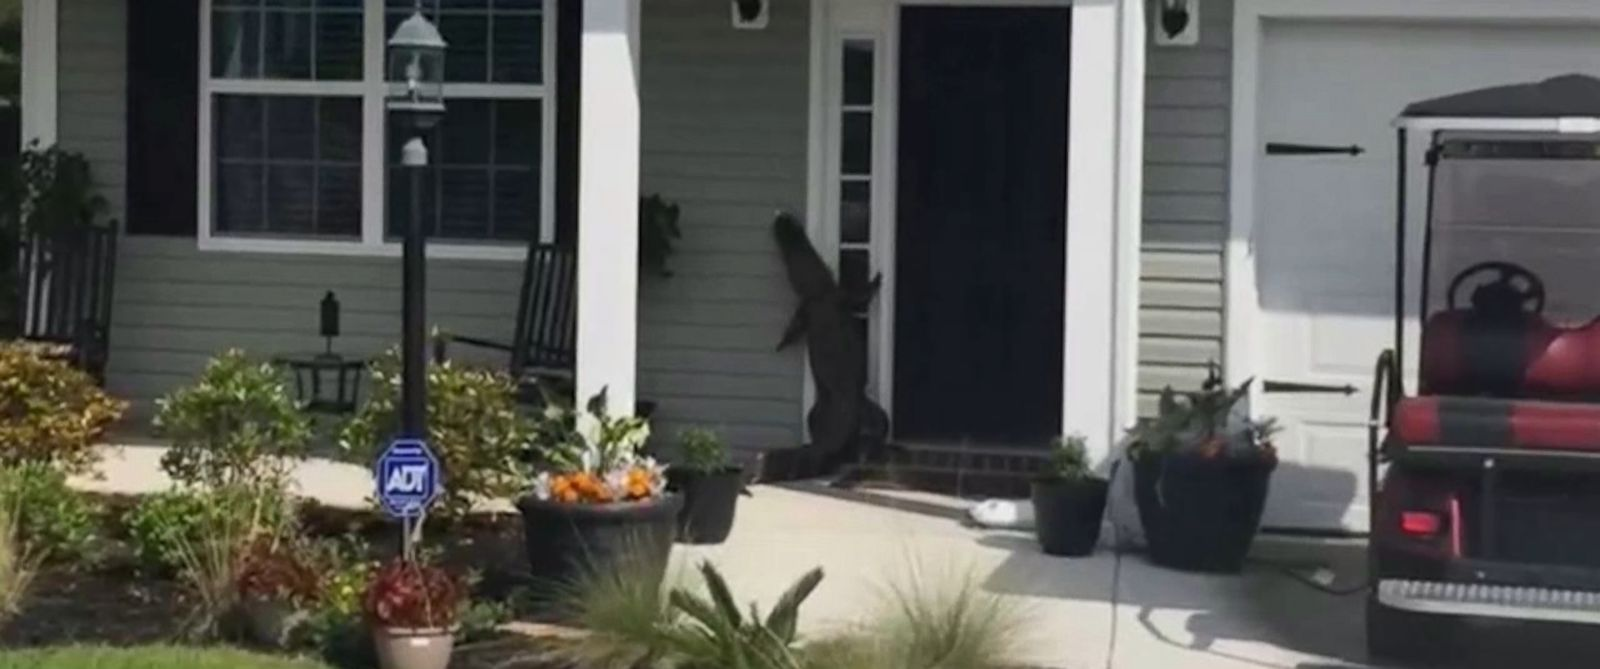 Alligator Caught on Video Attempting to Ring Doorbell of South Carolina Home